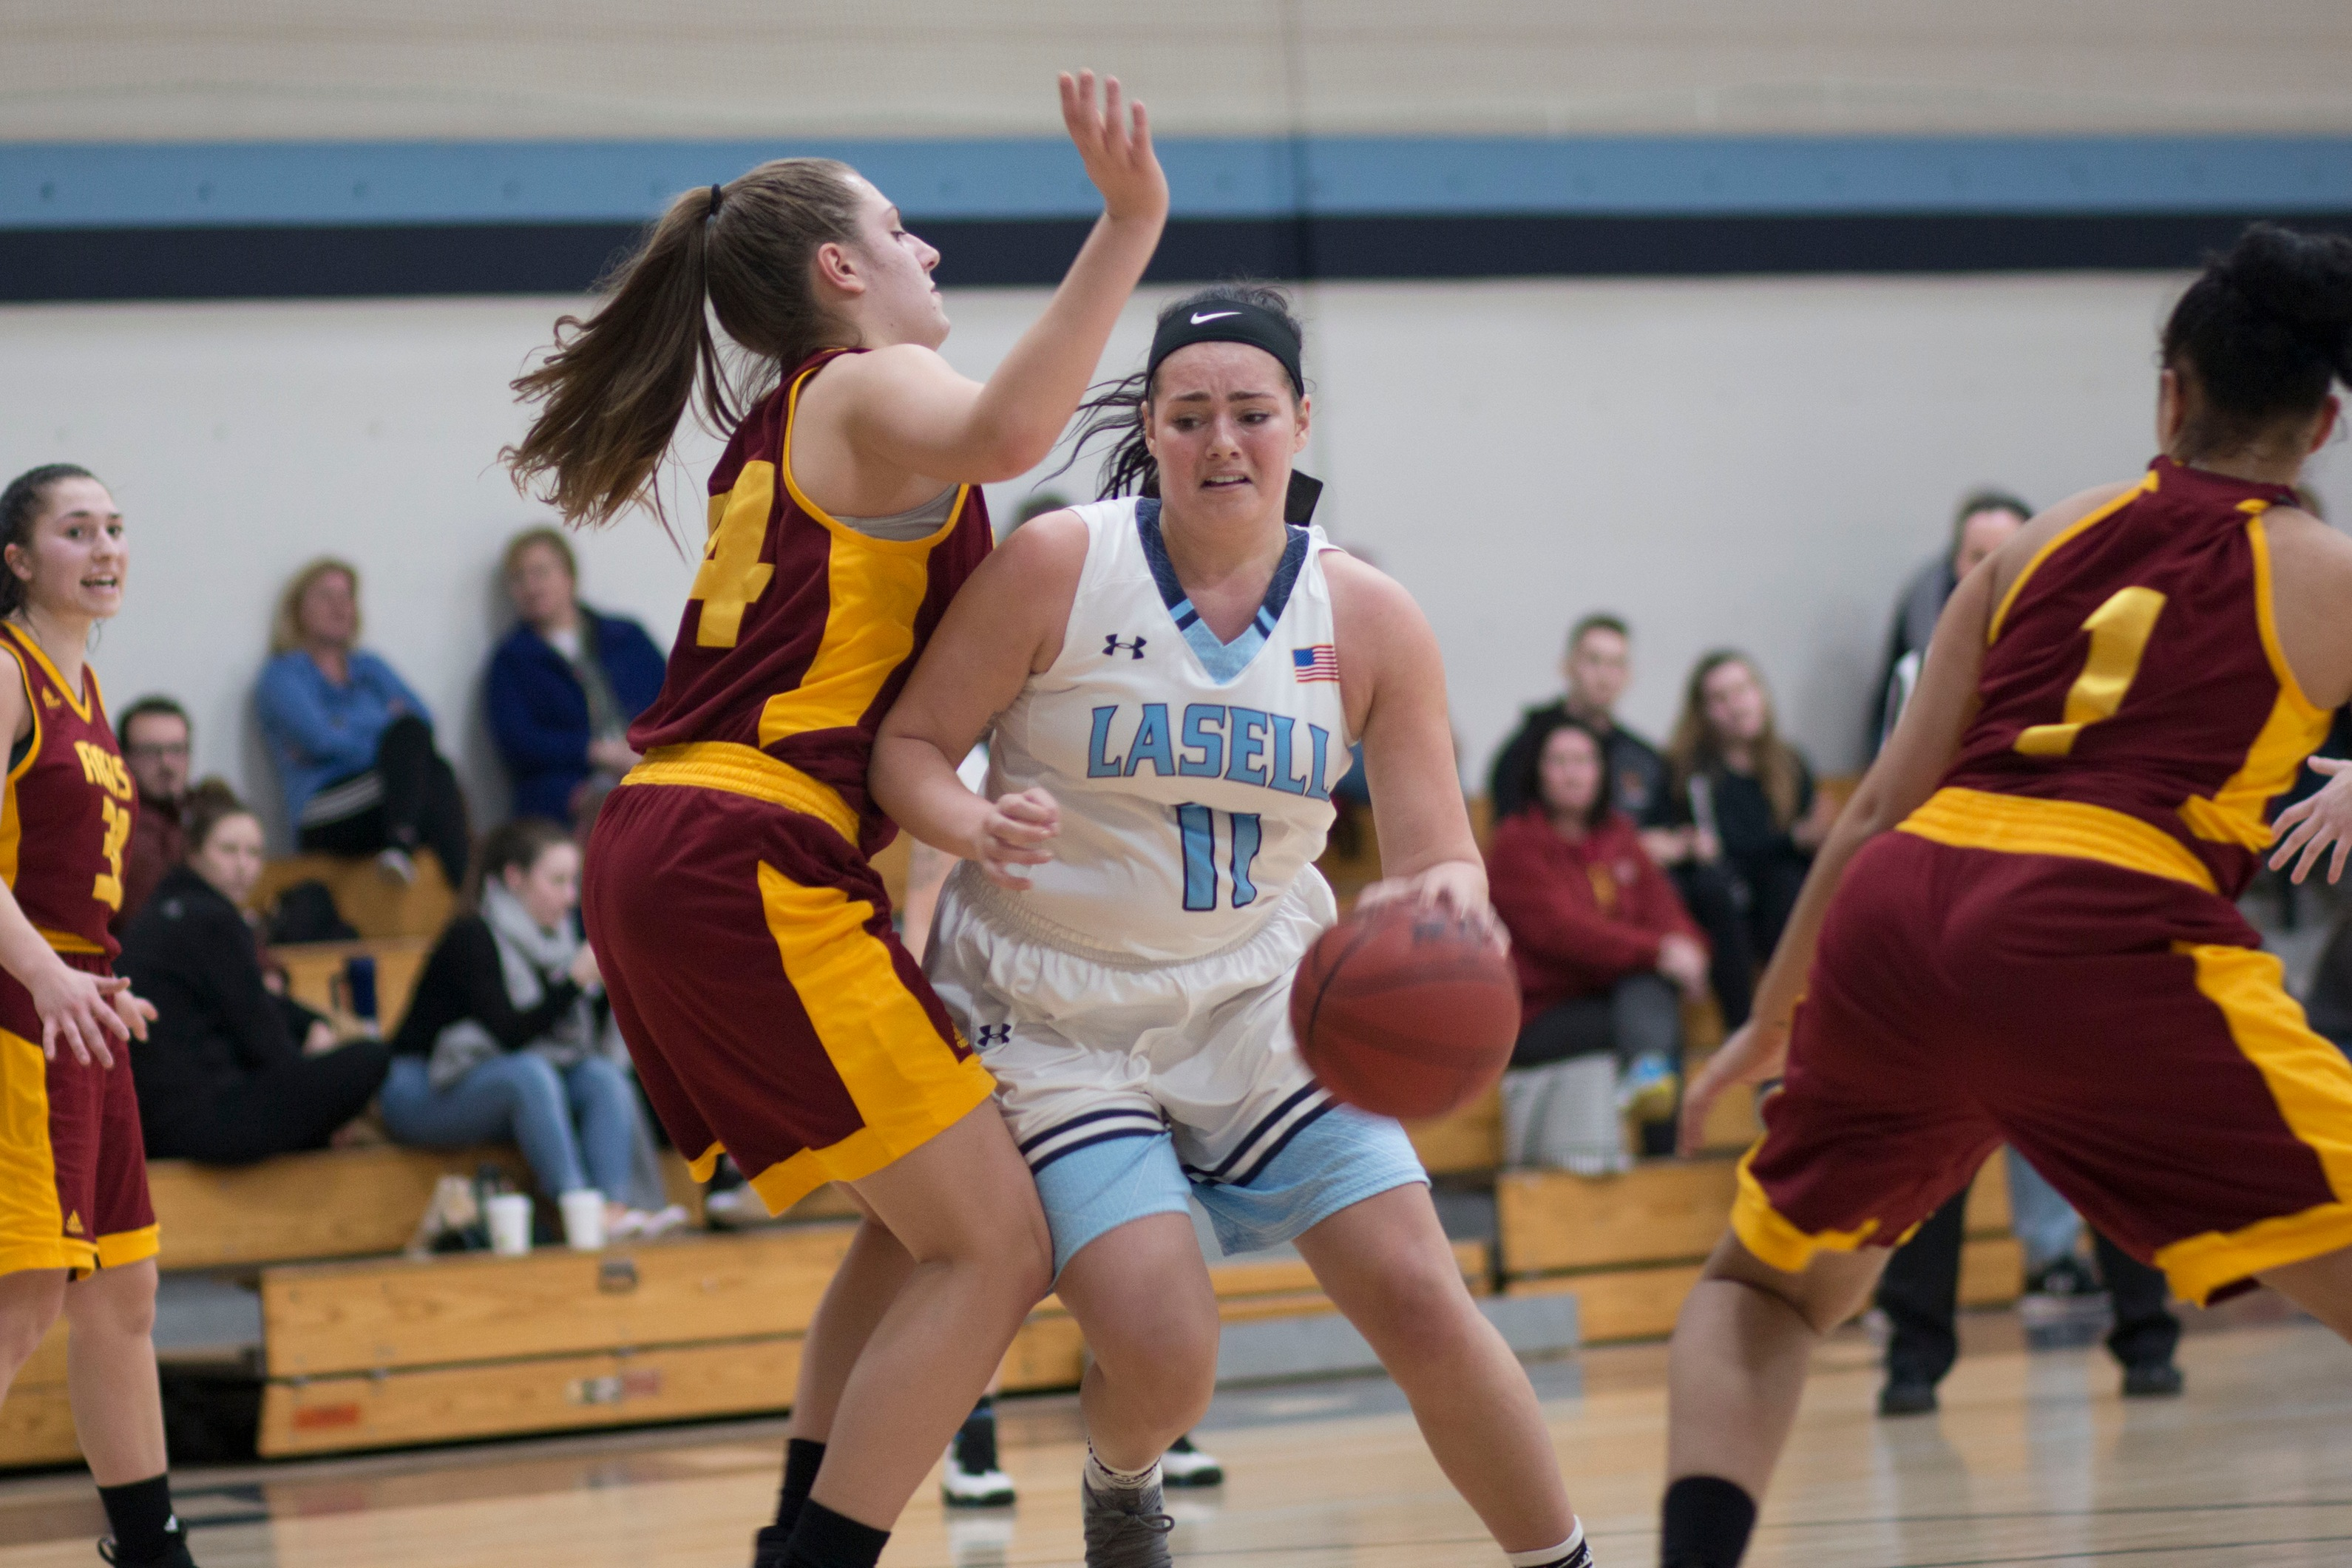 Regis too strong for Lasell Women's Basketball